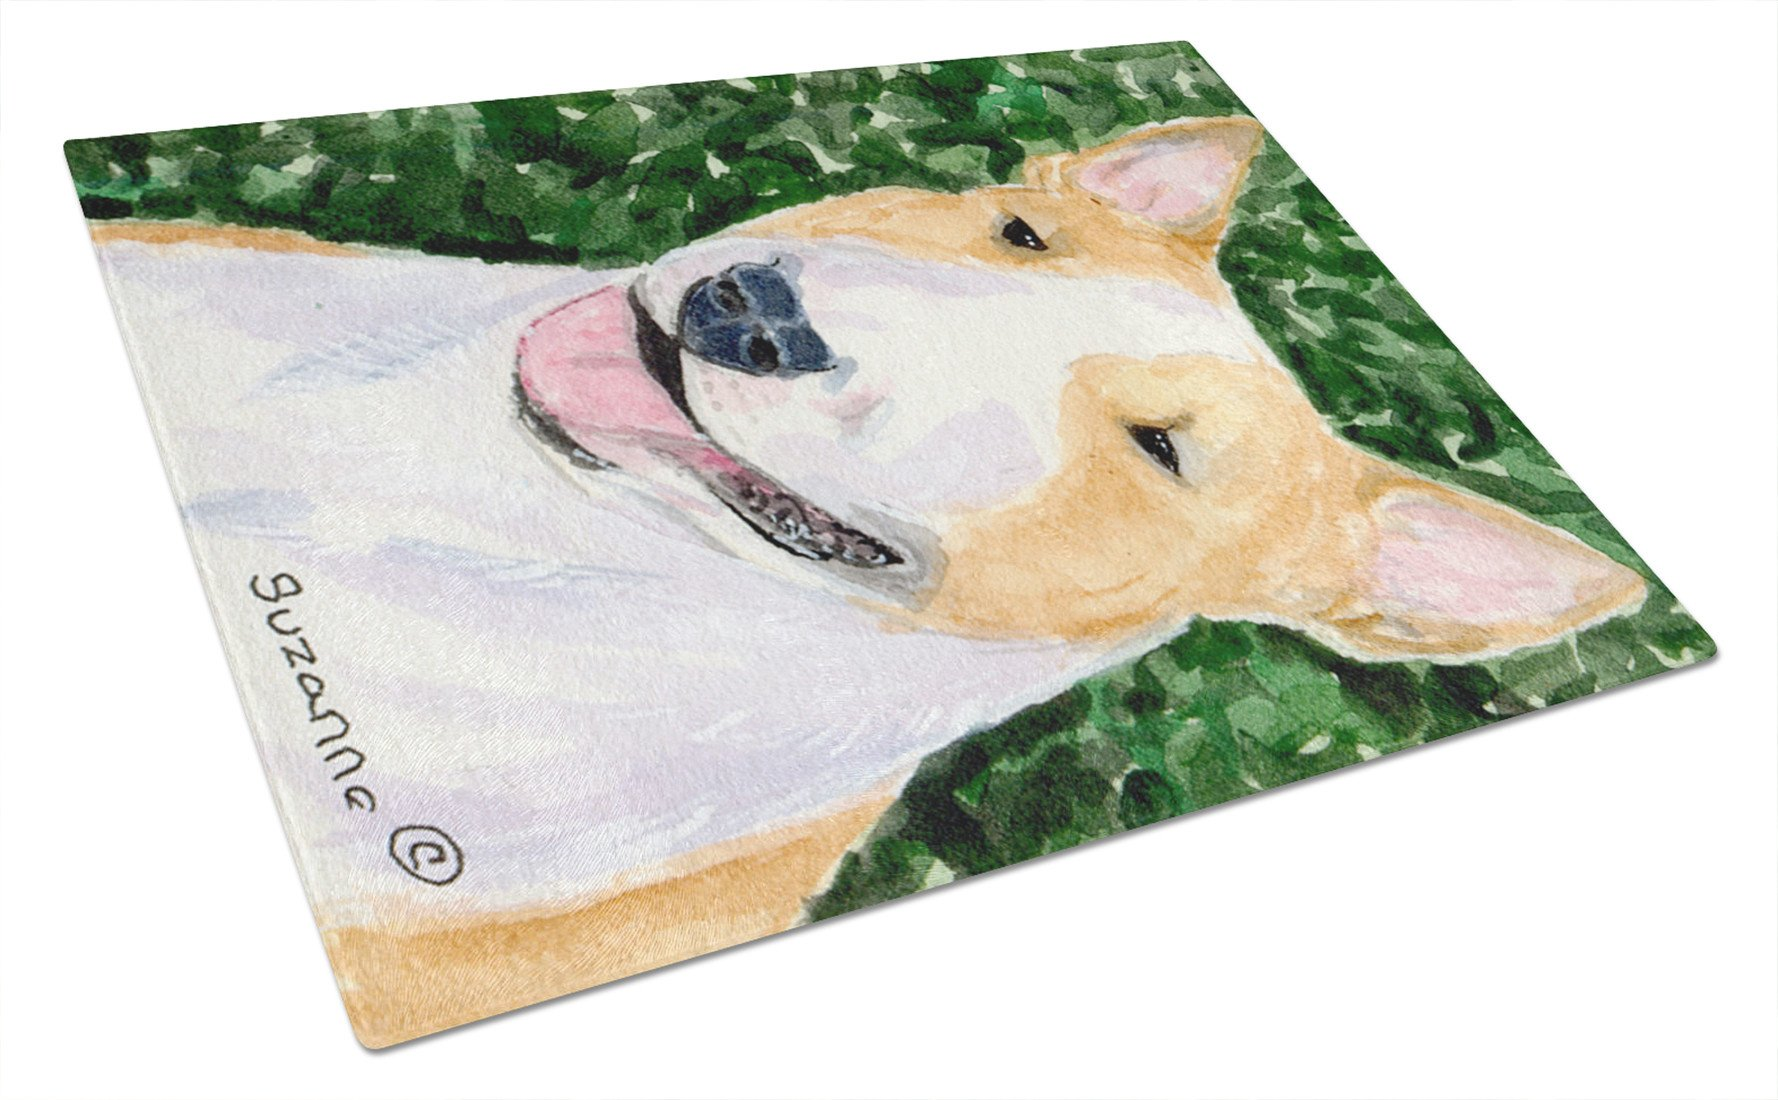 Bull Terrier Glass Cutting Board Large by Caroline's Treasures